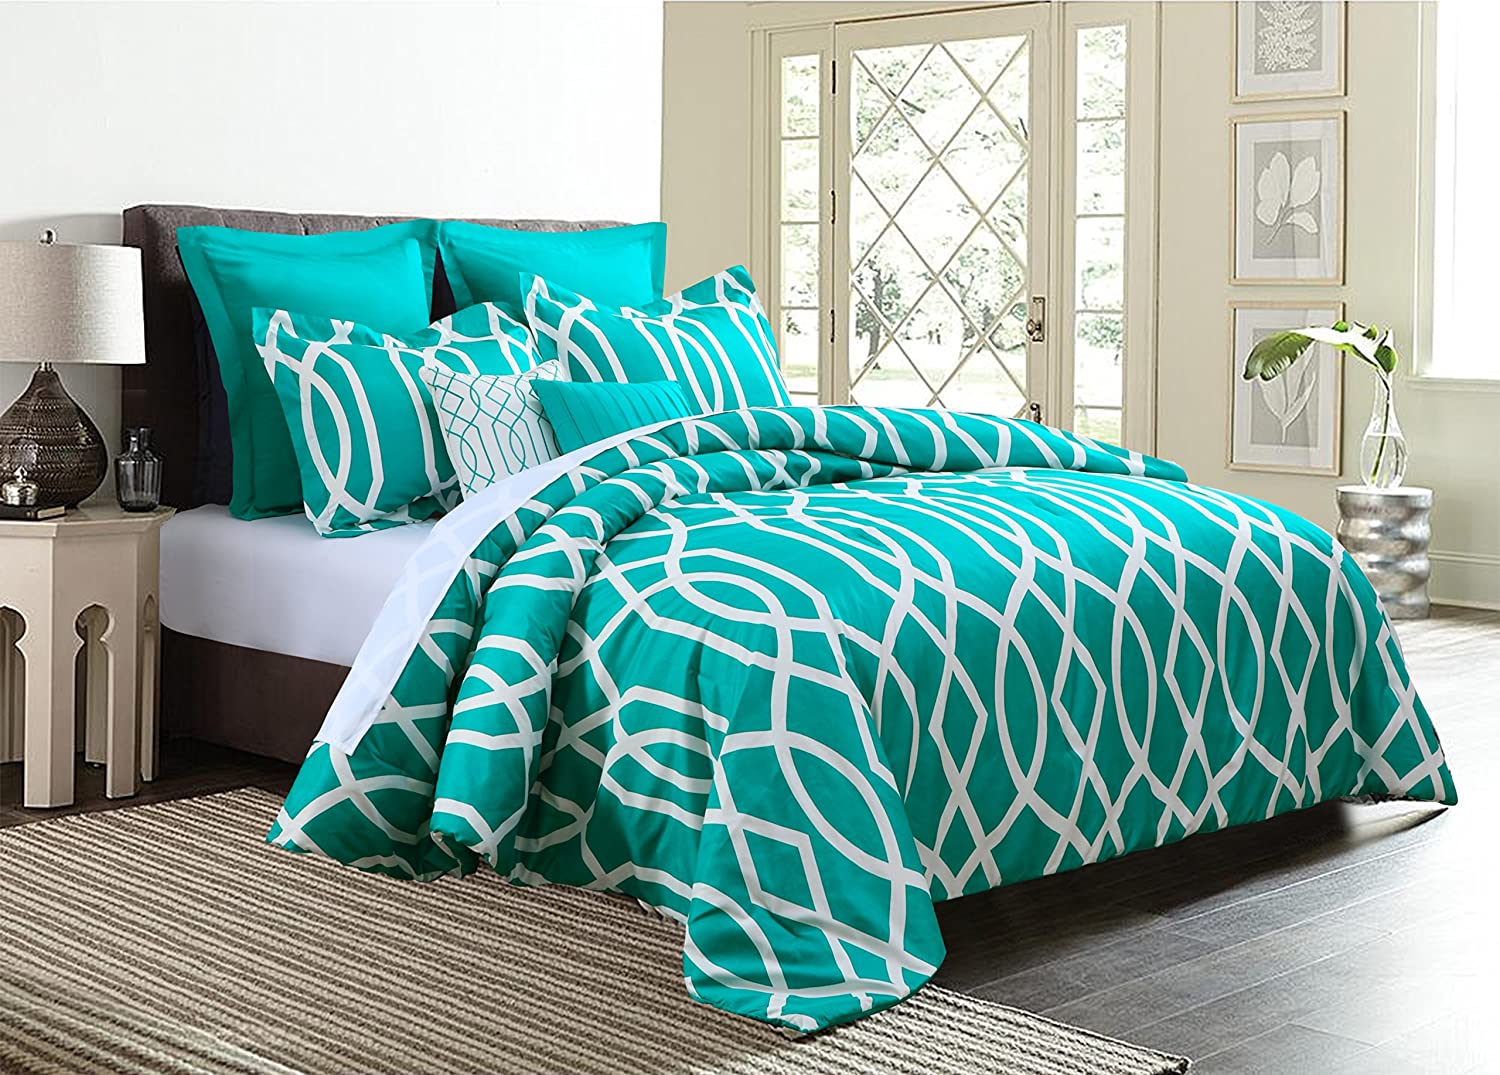 Anbu 7-Piece Comforter Set Geometric Bedding - Teal Blue